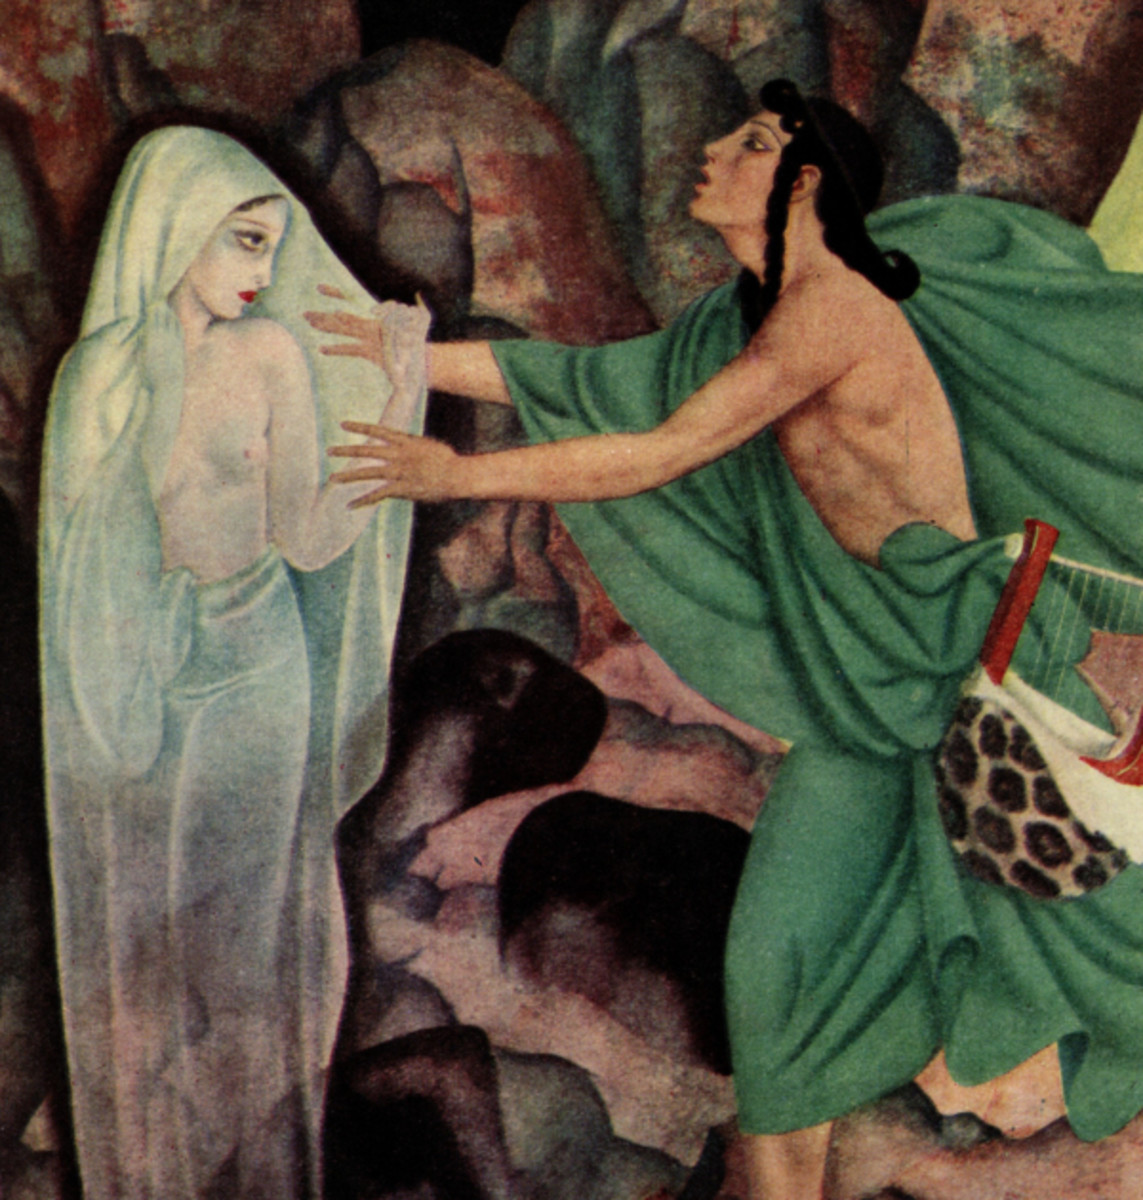 "Here we show a portion of 'Orpheus and Eurydice' - it is from the suite by Edmund Dulac published in ""Gods and Mortals in Love"" (1935)."